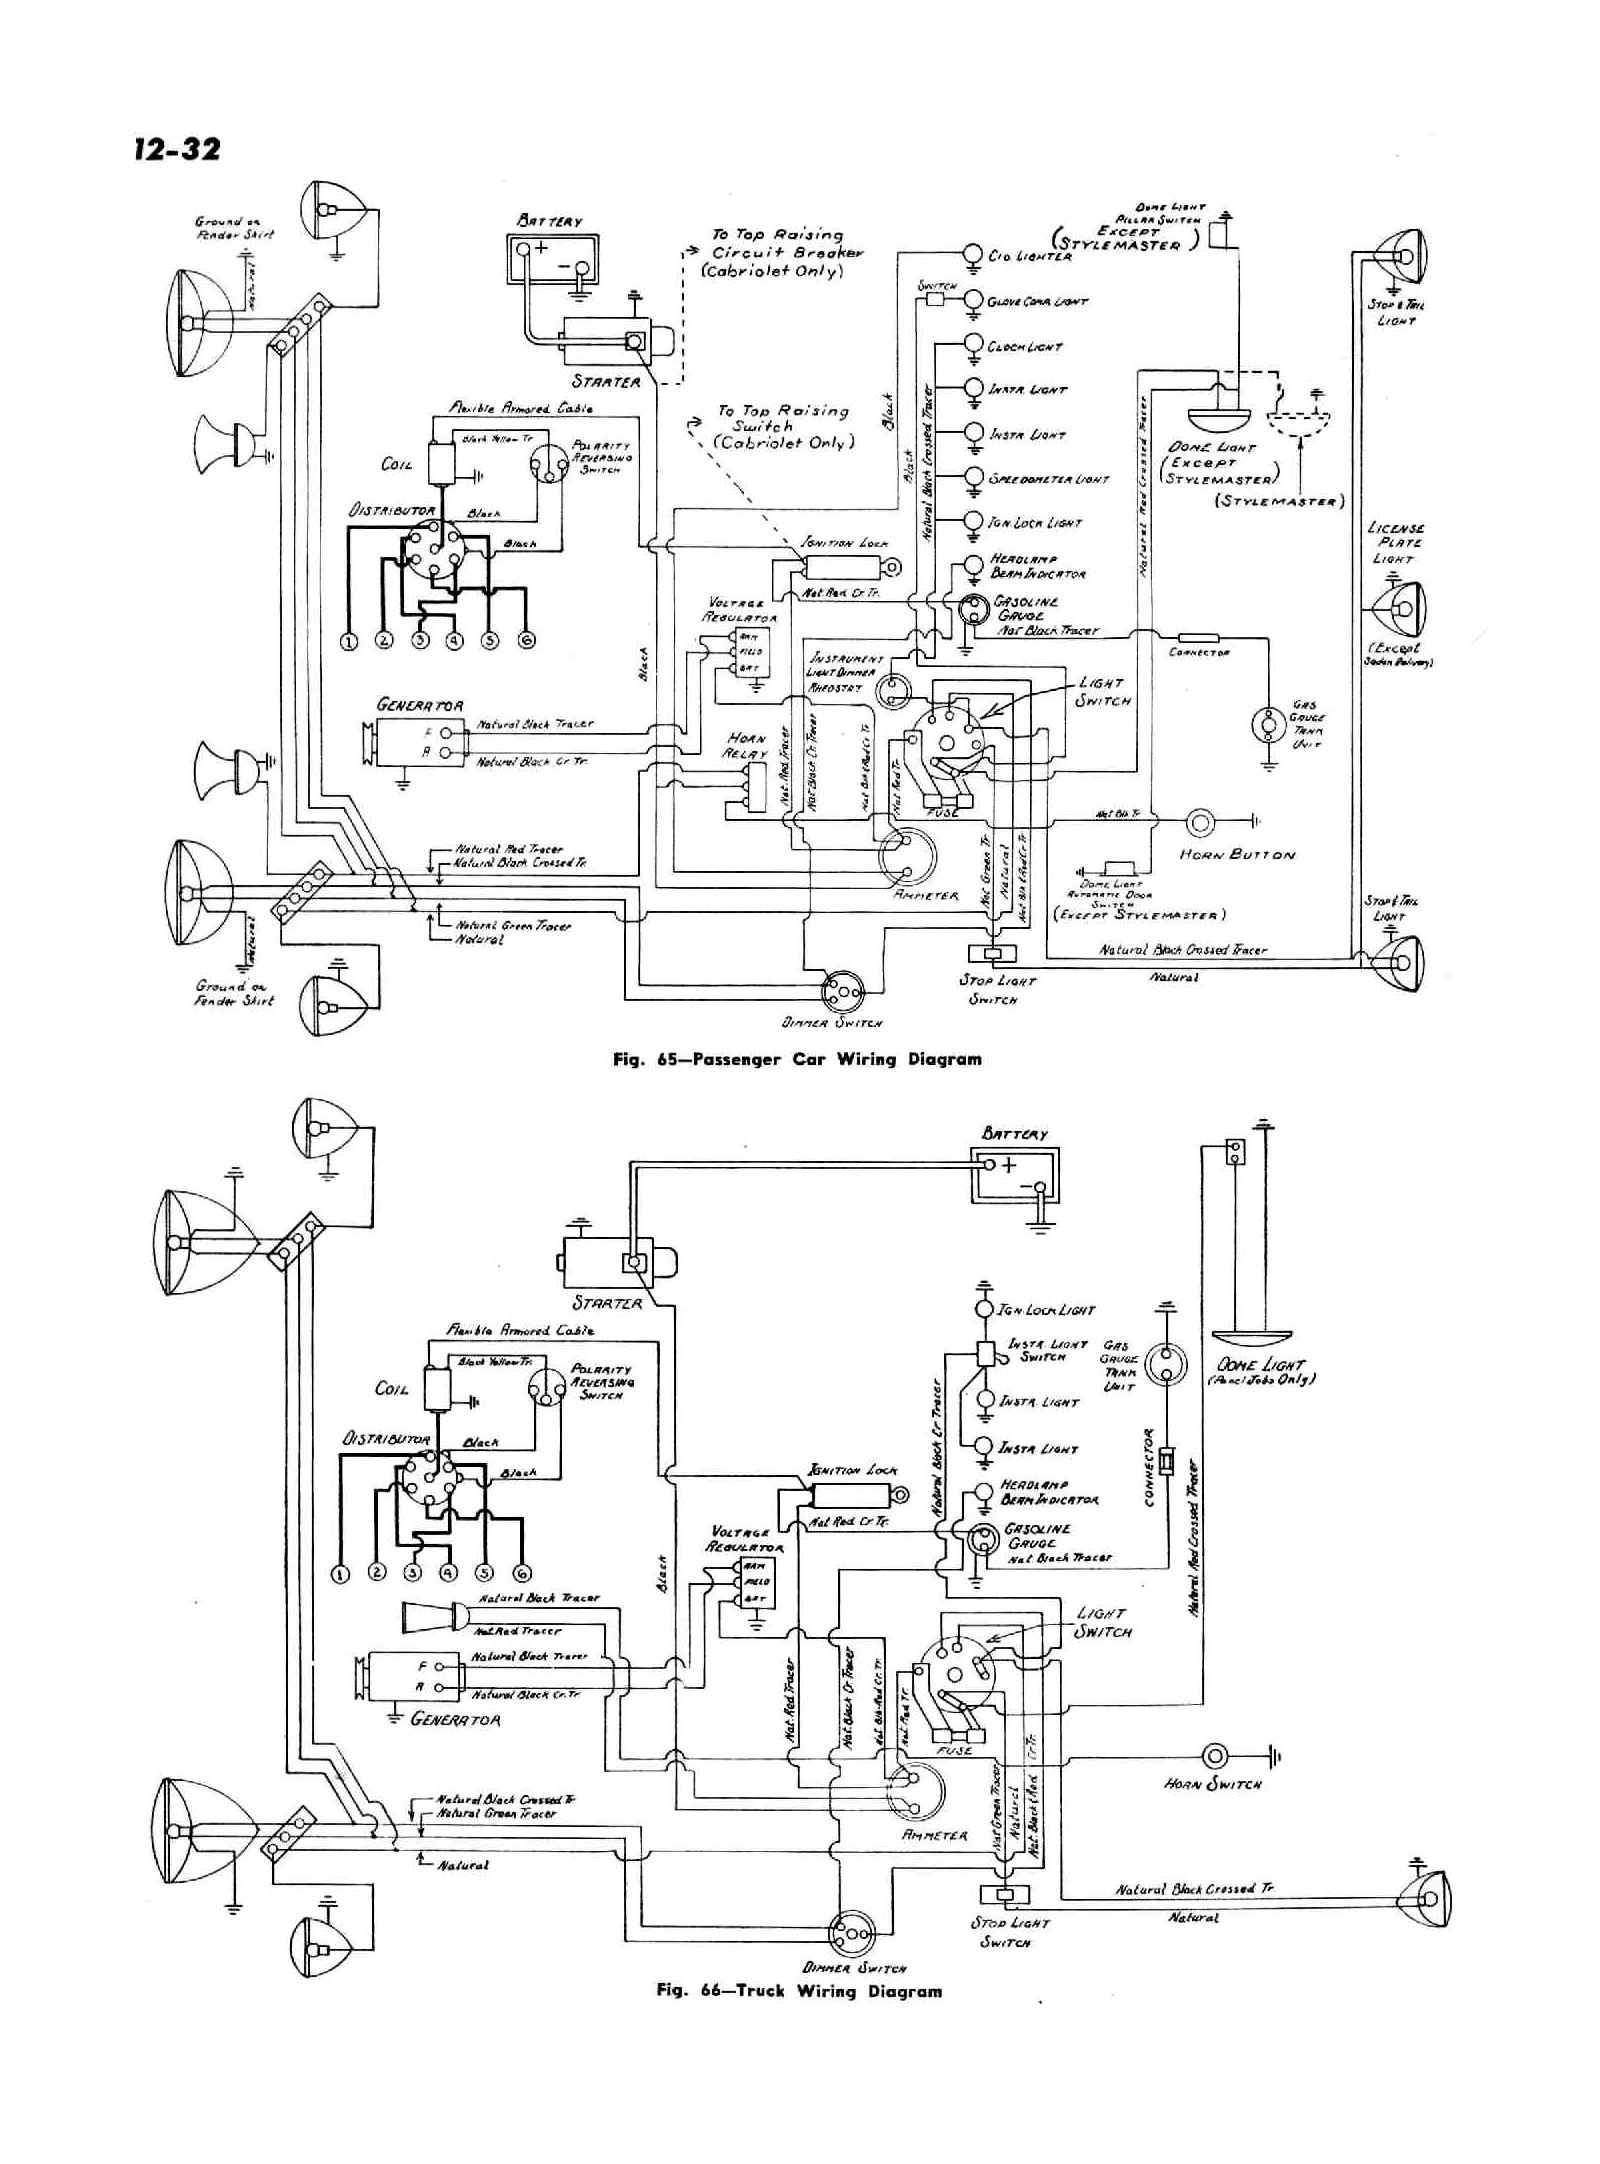 1948 chevy 3100 wiring diagram free download wiring diagram 1946 chevy truck wiring diagram wiring diagrams schematics 1946 chevy truck wiring diagram at